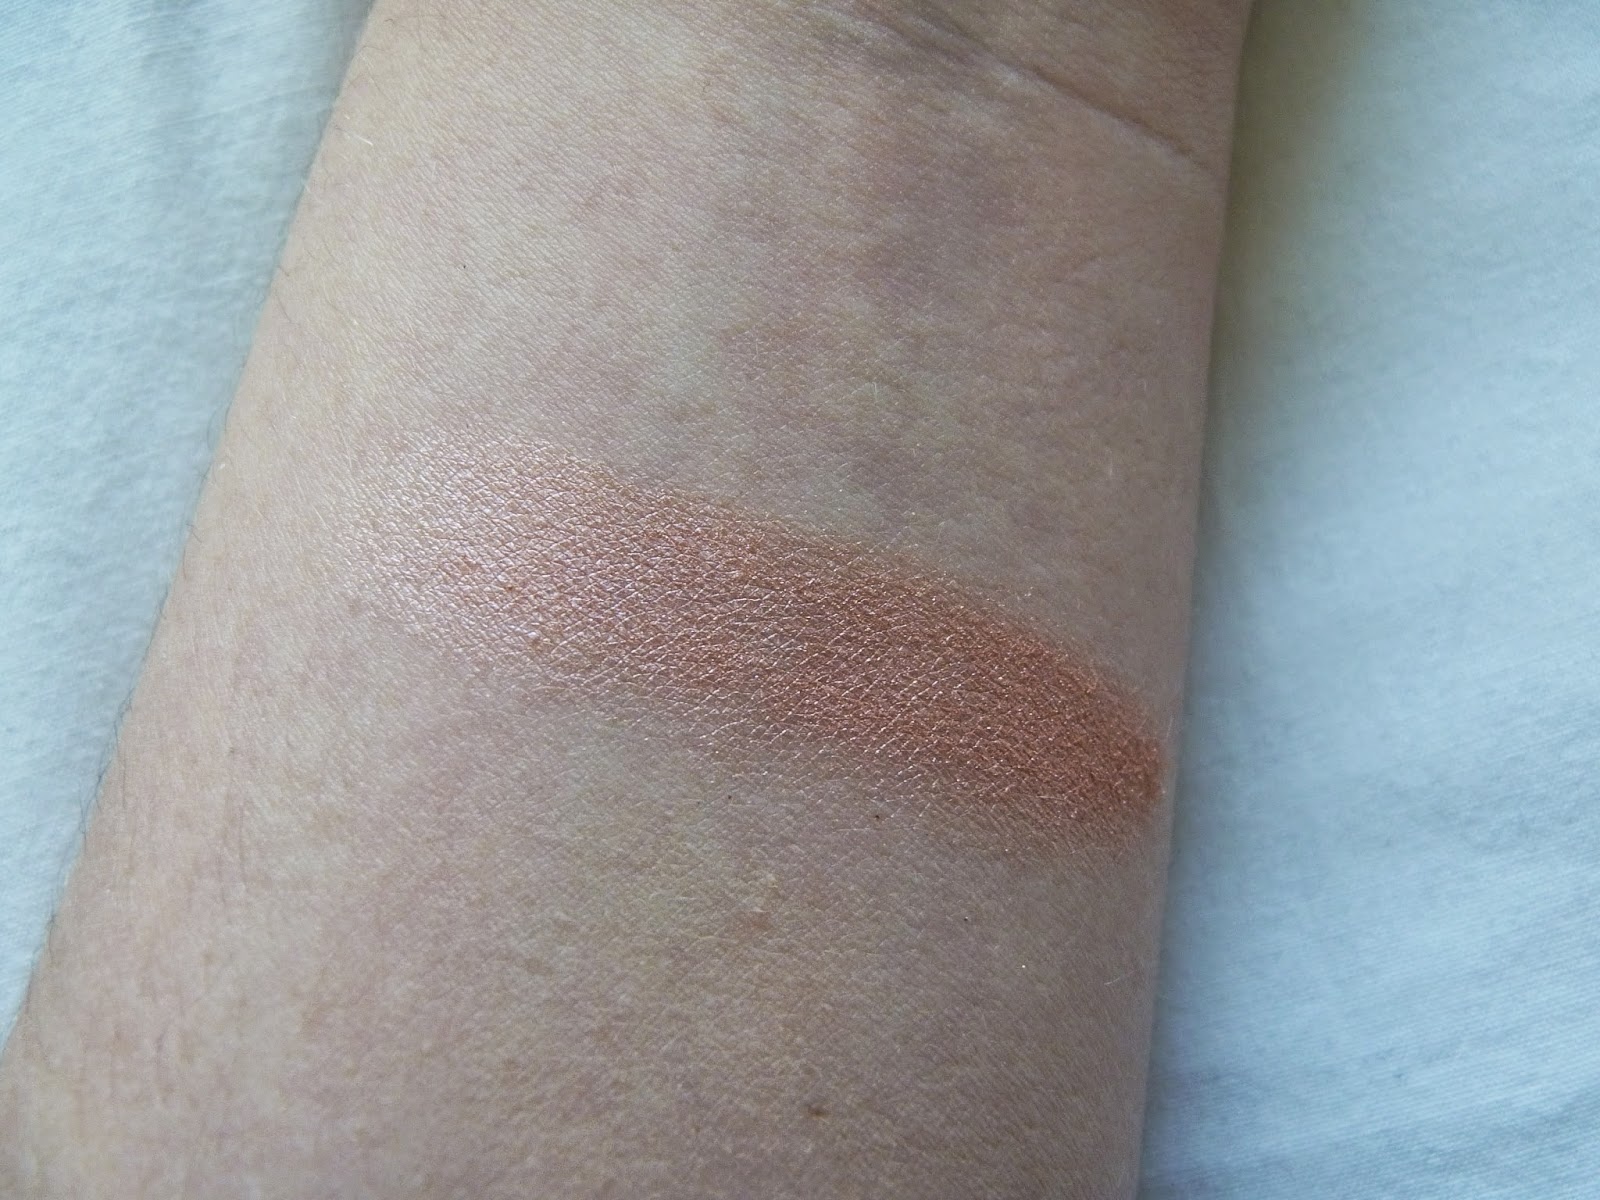 MAC Mineralize Skin Finish MSF Stereo Rose Blush Highlight Swatch